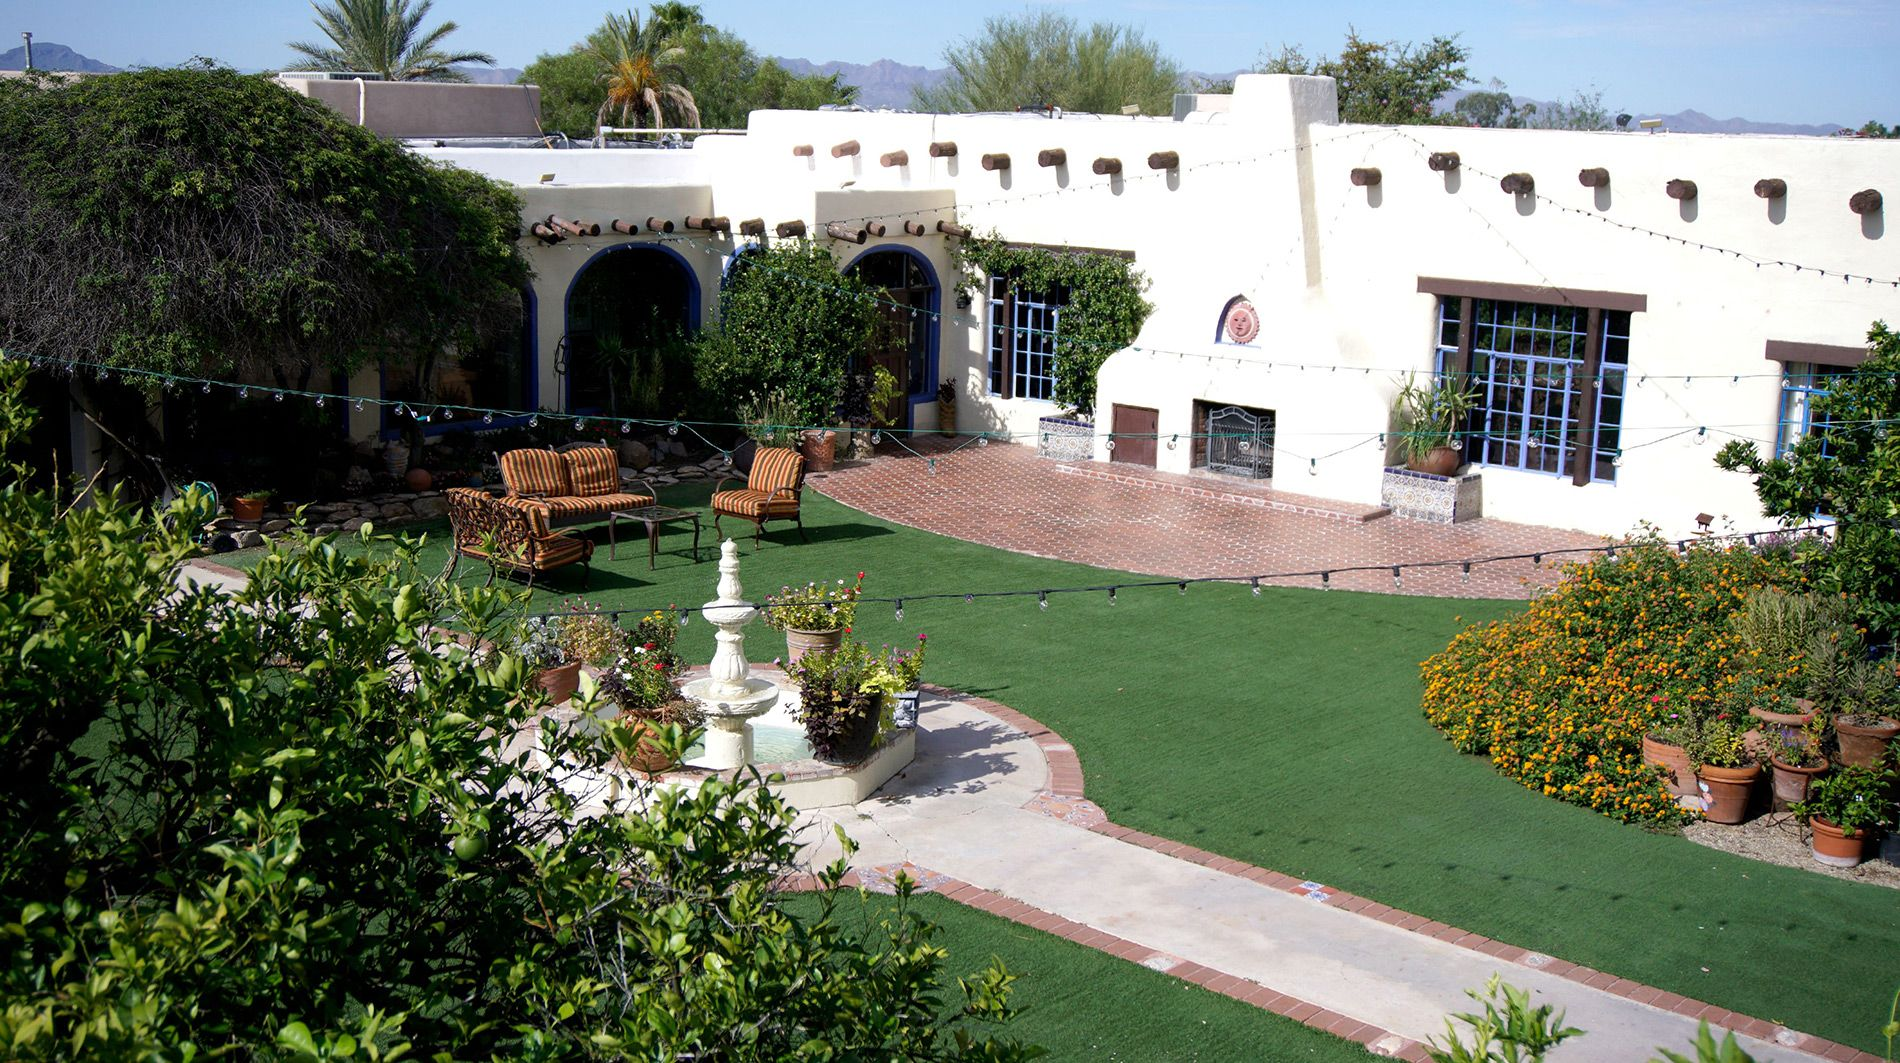 Tucson vacation guide: A new take on the Old Pueblo